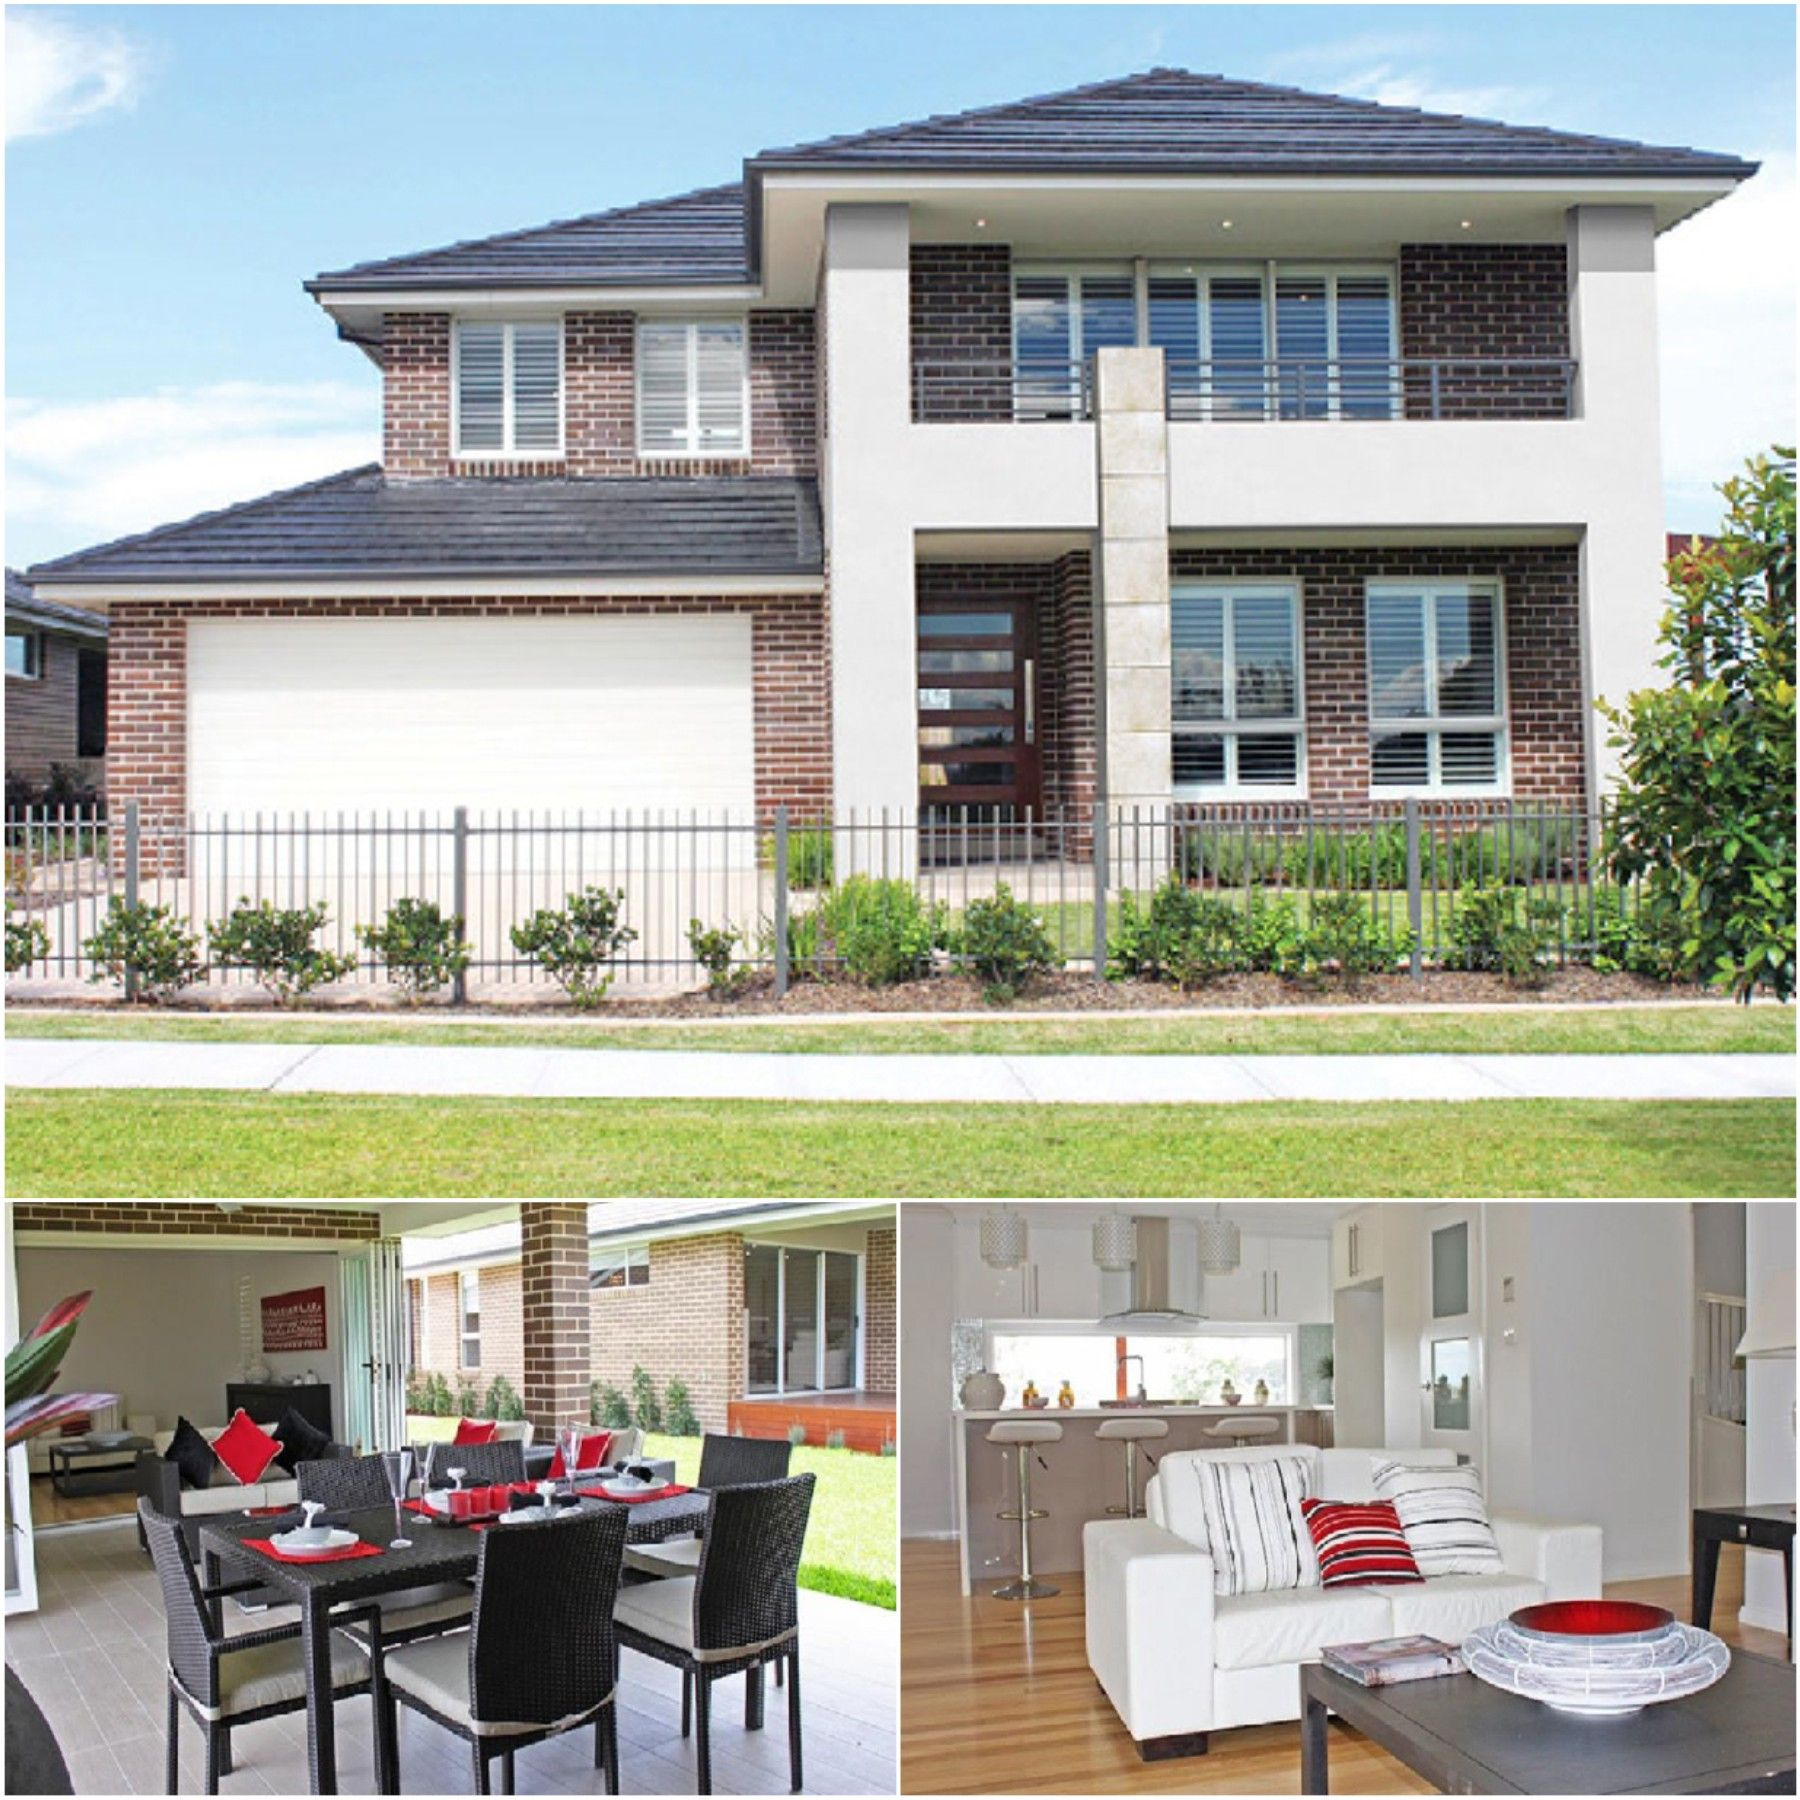 #Build this impressive #HomeDesign with creative and clever planning from #ProvincialHomes. Worth visiting at #GledswoodHills!  #Inspiration #Motivation #InteriorDesign #NewHome #HouseDesign #ModernDesign #Modern #Home #House #Houses #YourHome #DreamHome